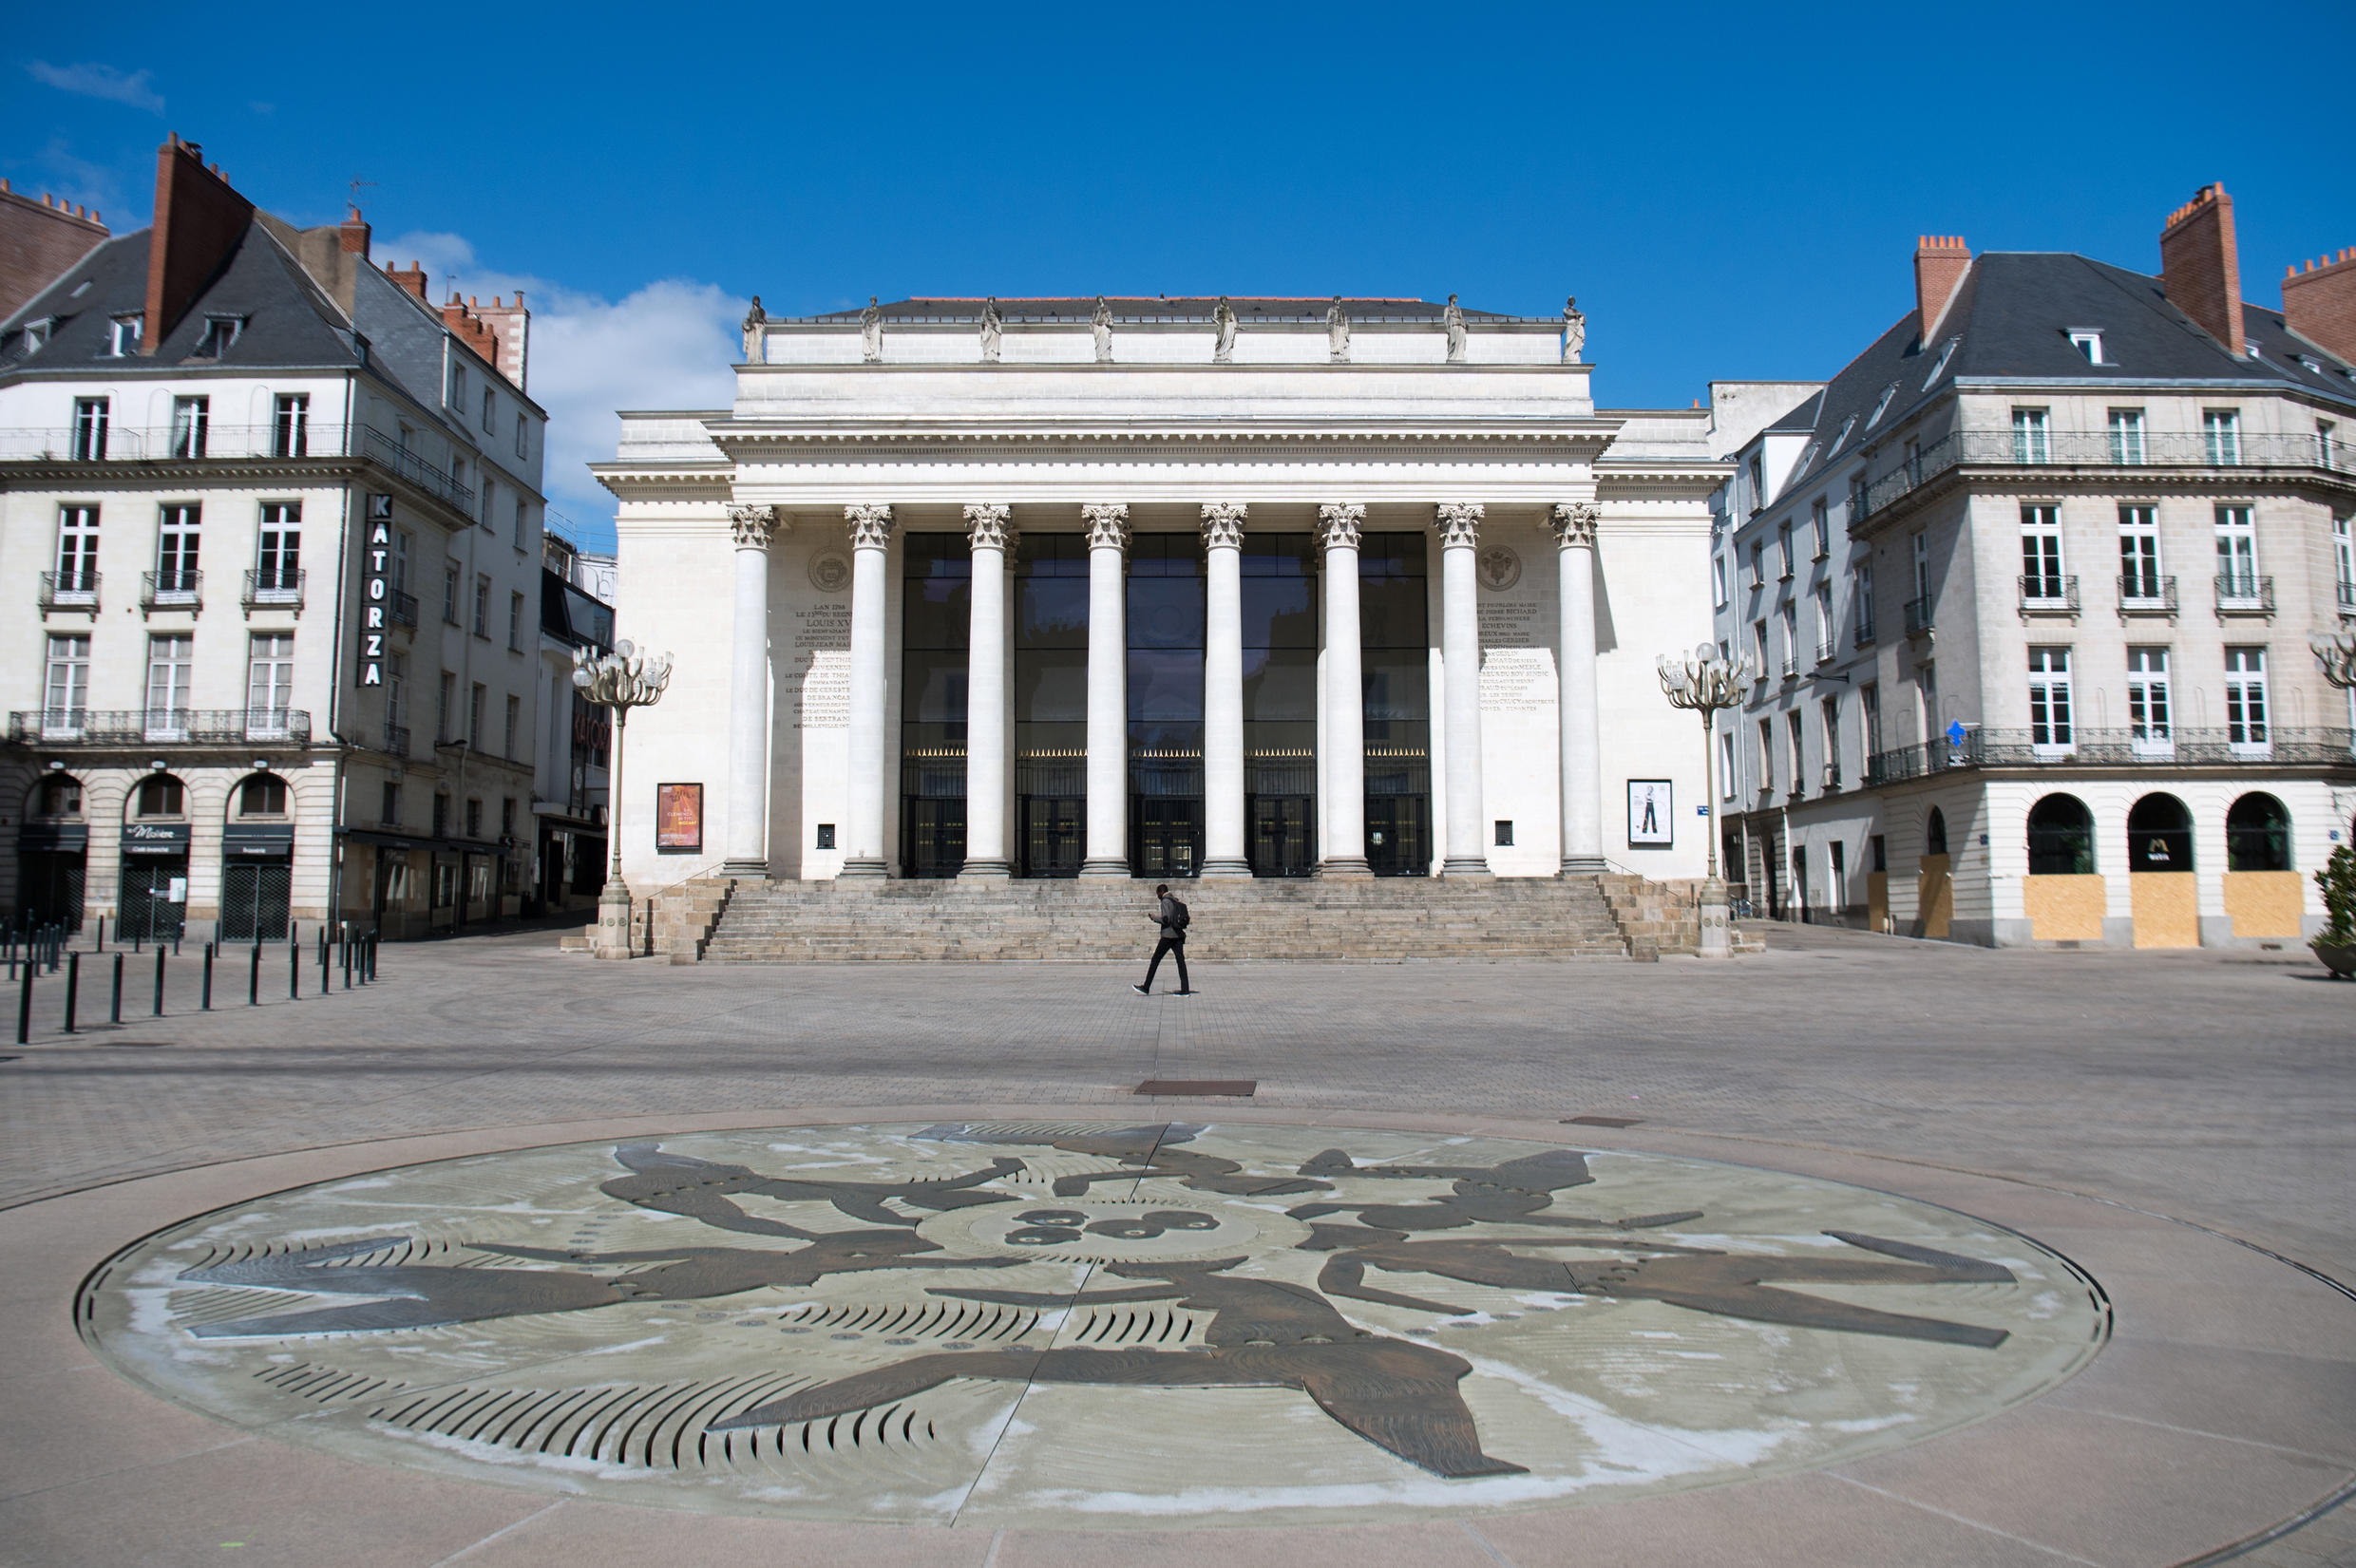 La place Graslin, in central Nantes, remains deserted since France imposed a total lockdown on March 17, 2020.